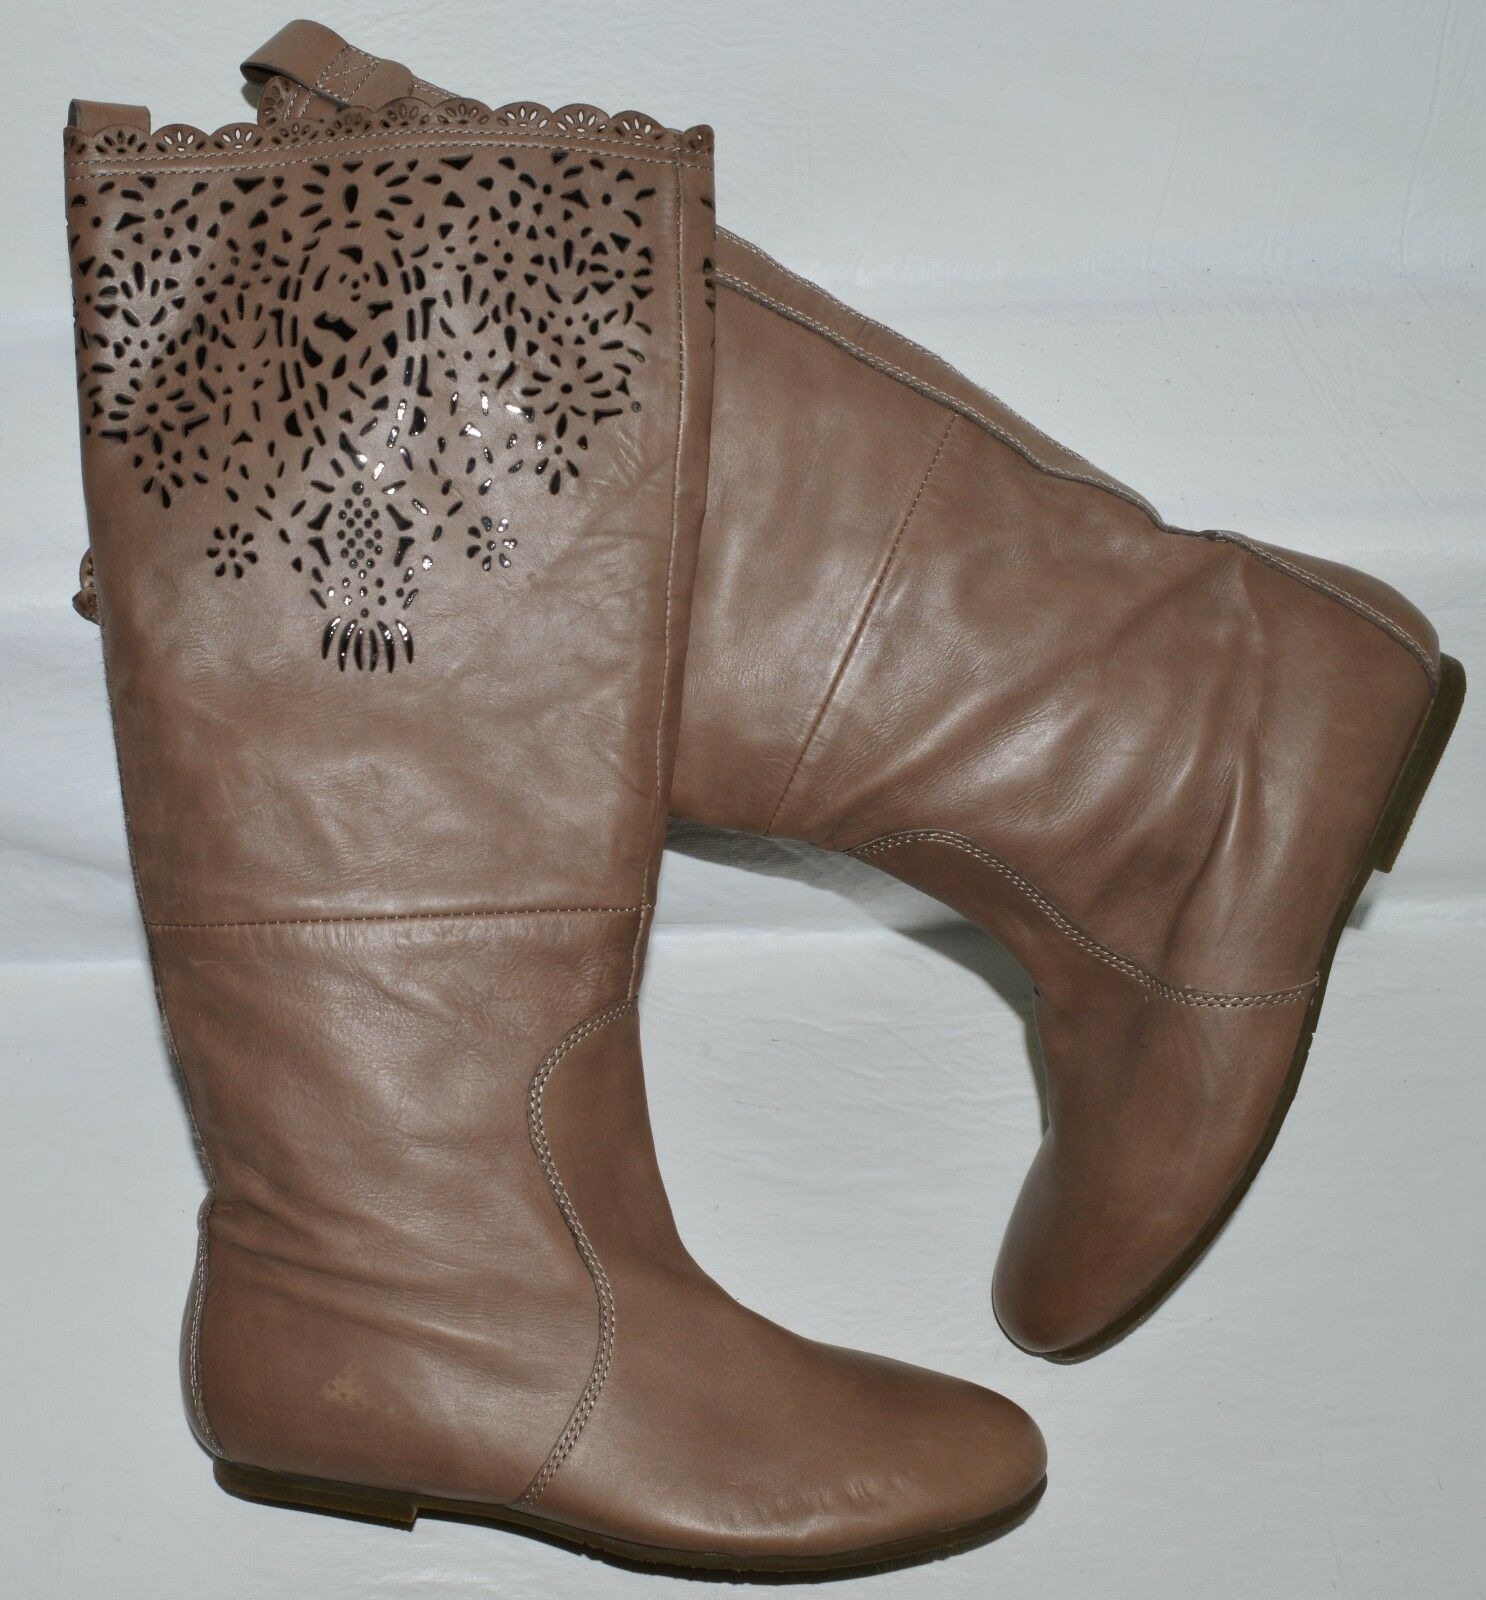 BELLE SZ 6.5 M 235 BROWN LASER CUT-OUTS RIDING BOOTS BOOTIES FLATS EXCELLENT